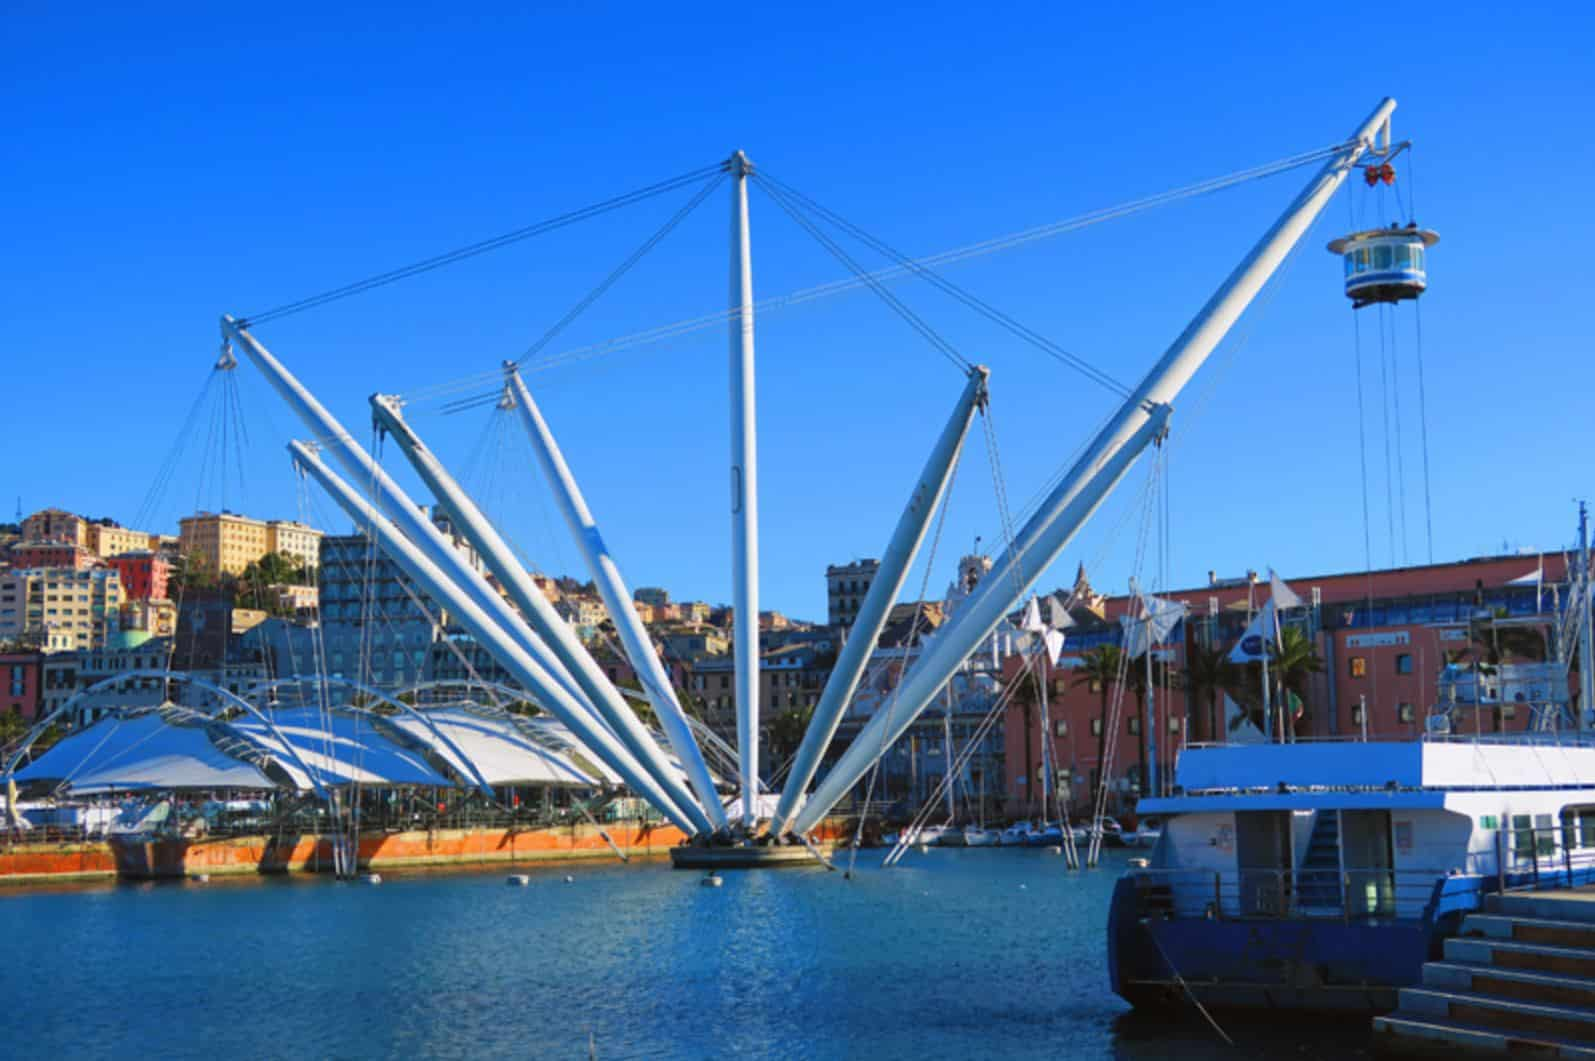 instagrammable places in genoa